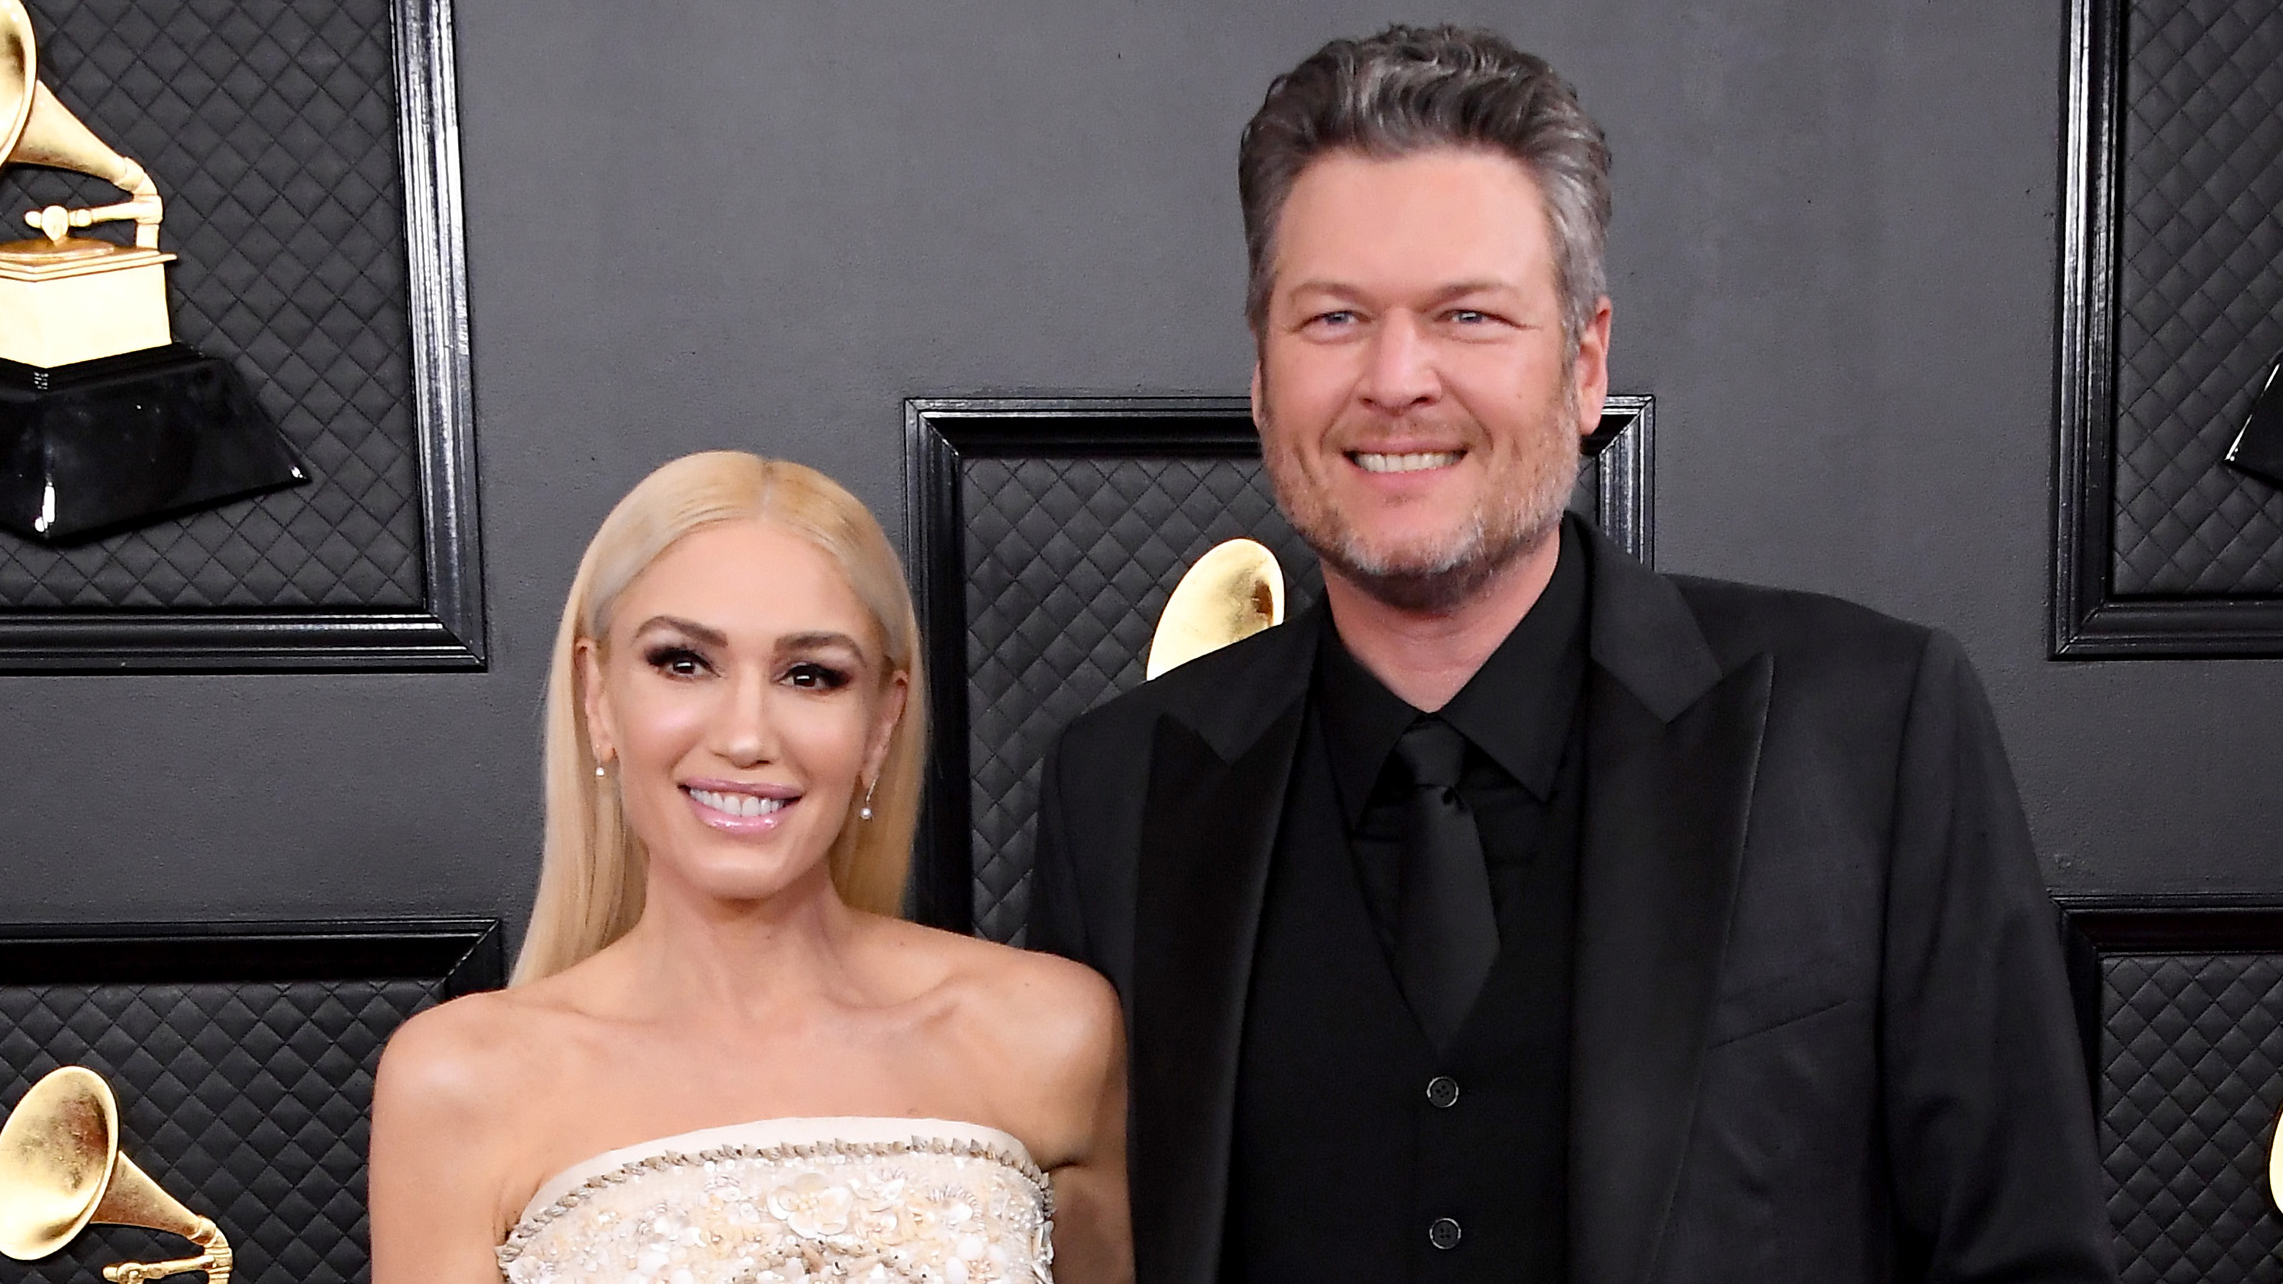 Gwen Stefani discusses Blake Shelton's surprise proposal